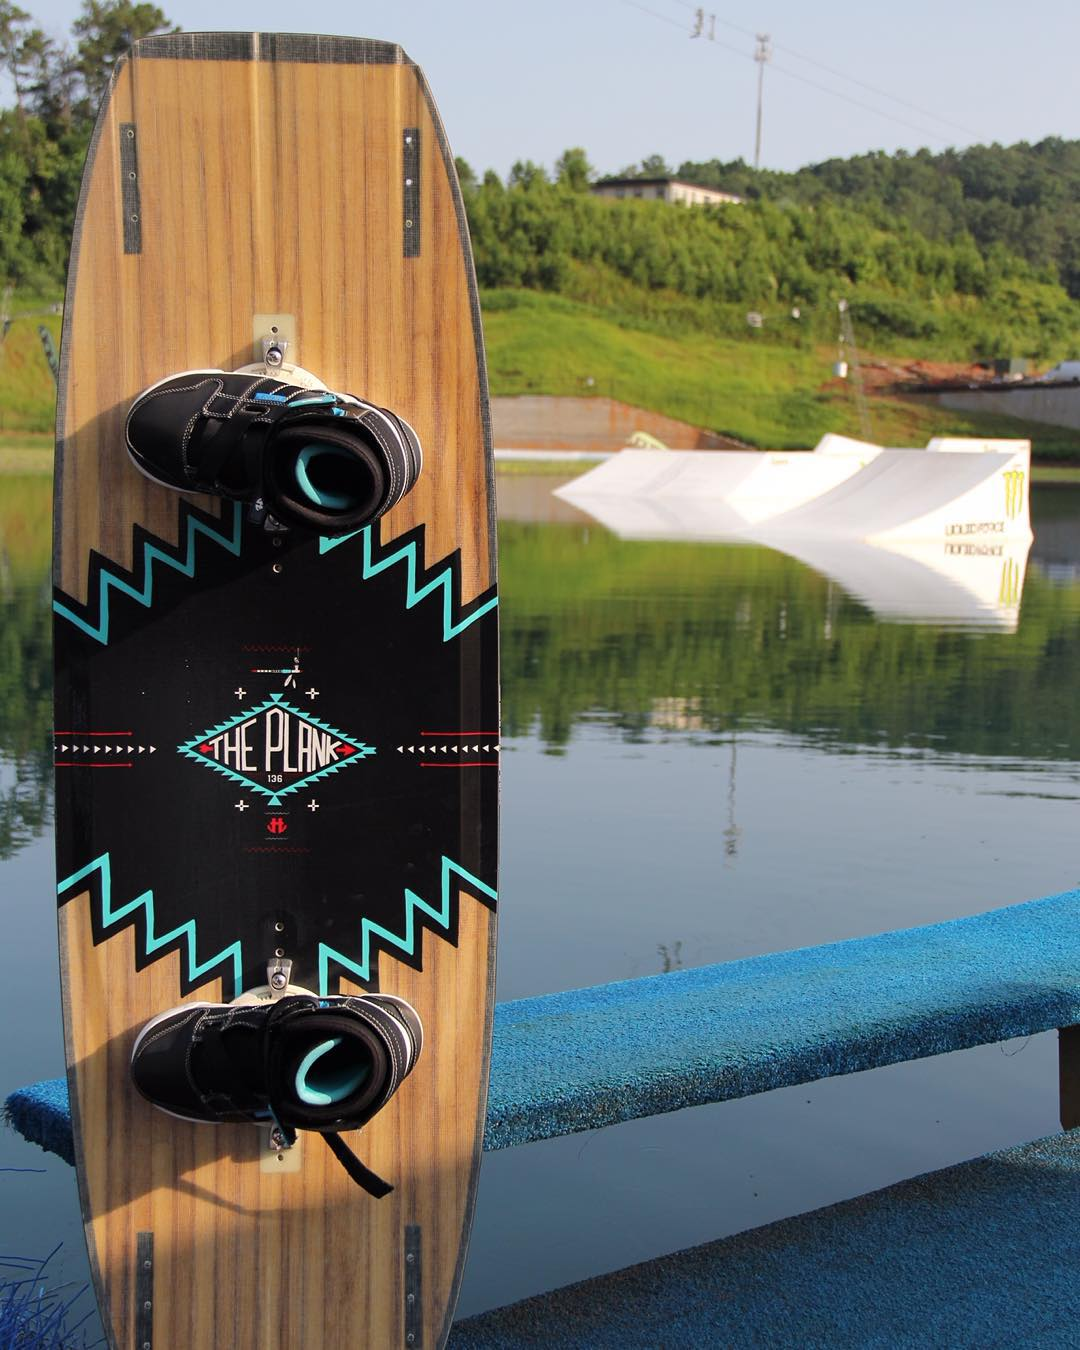 Cyber Monday Sale in full effect on humanoidwake.com!  Boards as low as they go! Get um while the gettins good.  #wakeboarding